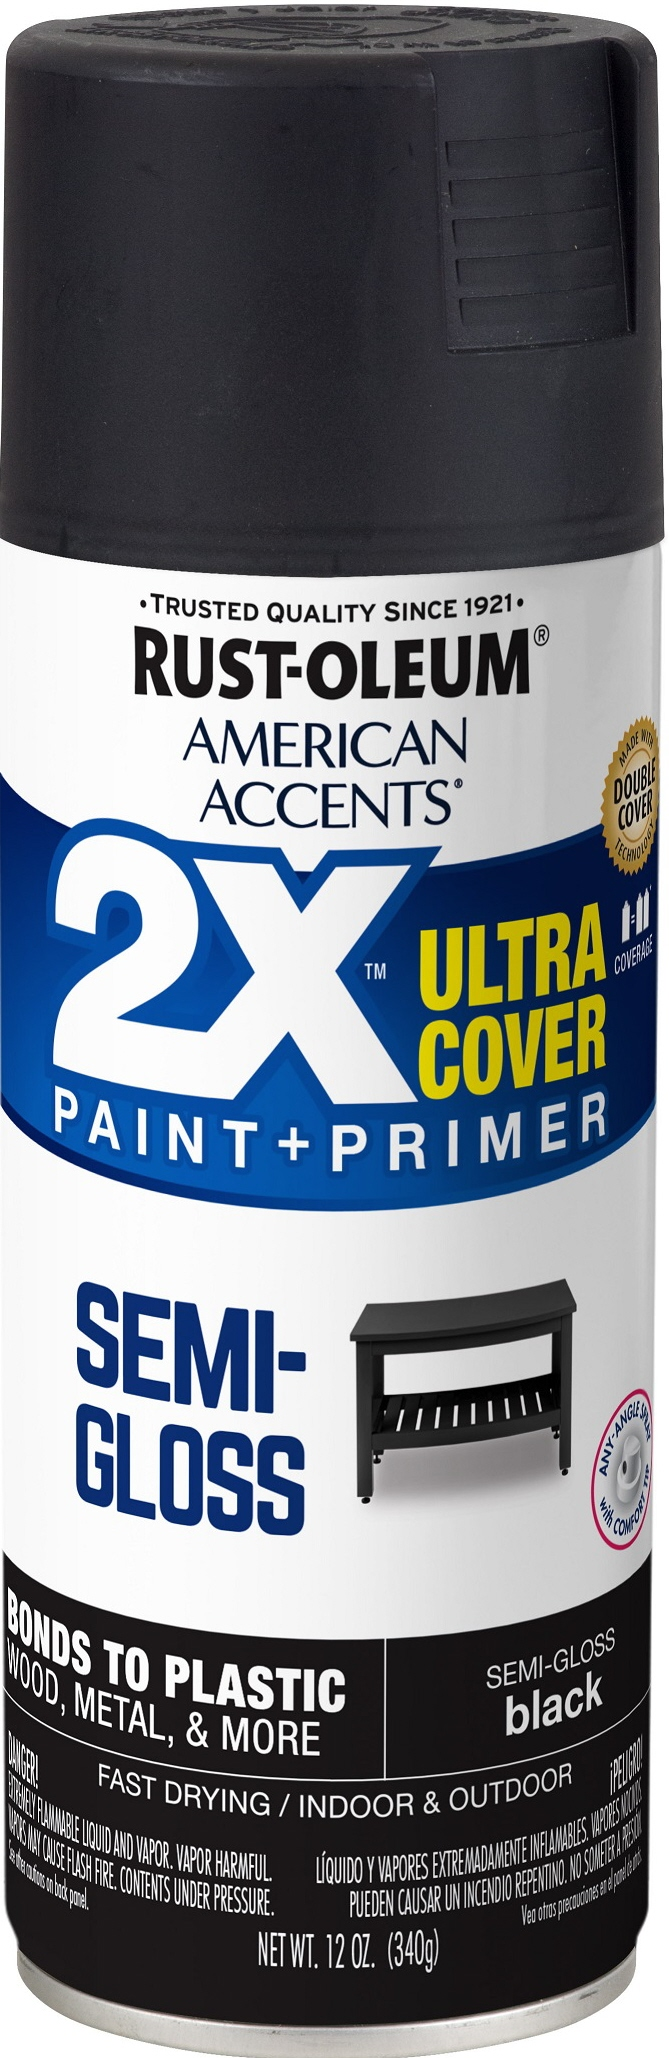 (3 Pack) Rust-Oleum American Accents Ultra Cover 2X Semi-Gloss Black Spray Paint and Primer in 1, 12 oz